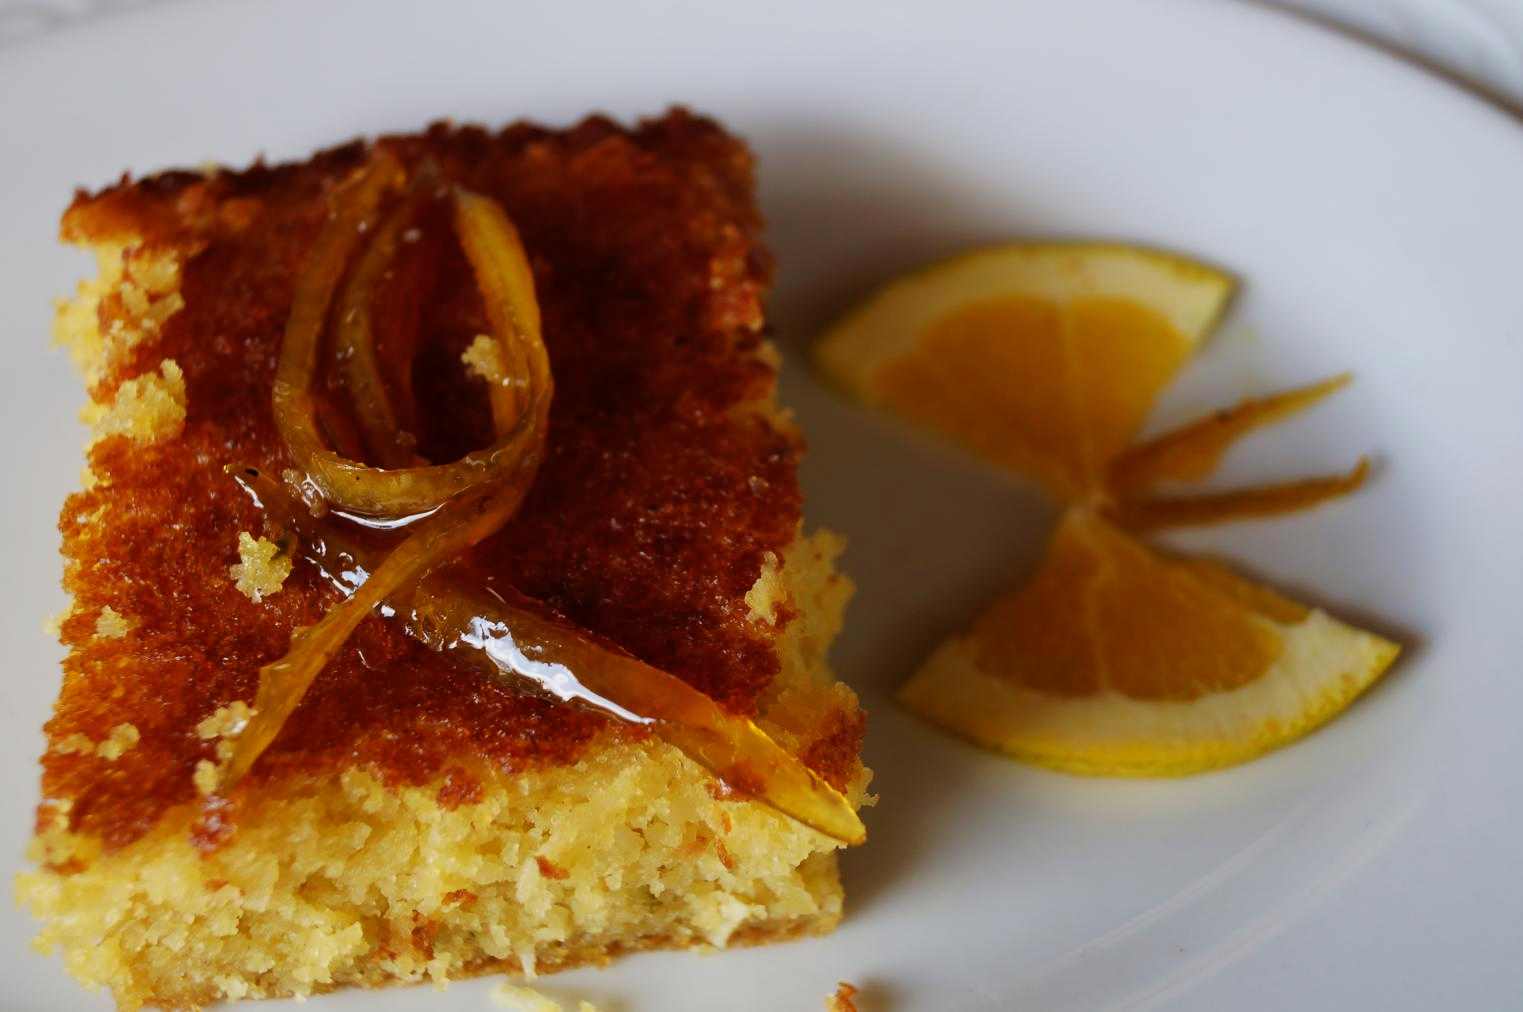 An after lunch dessert, made with a sweet corn flour and orange, topped with some kind of sweetened/candied orange peel, with a cute butterfly :-)